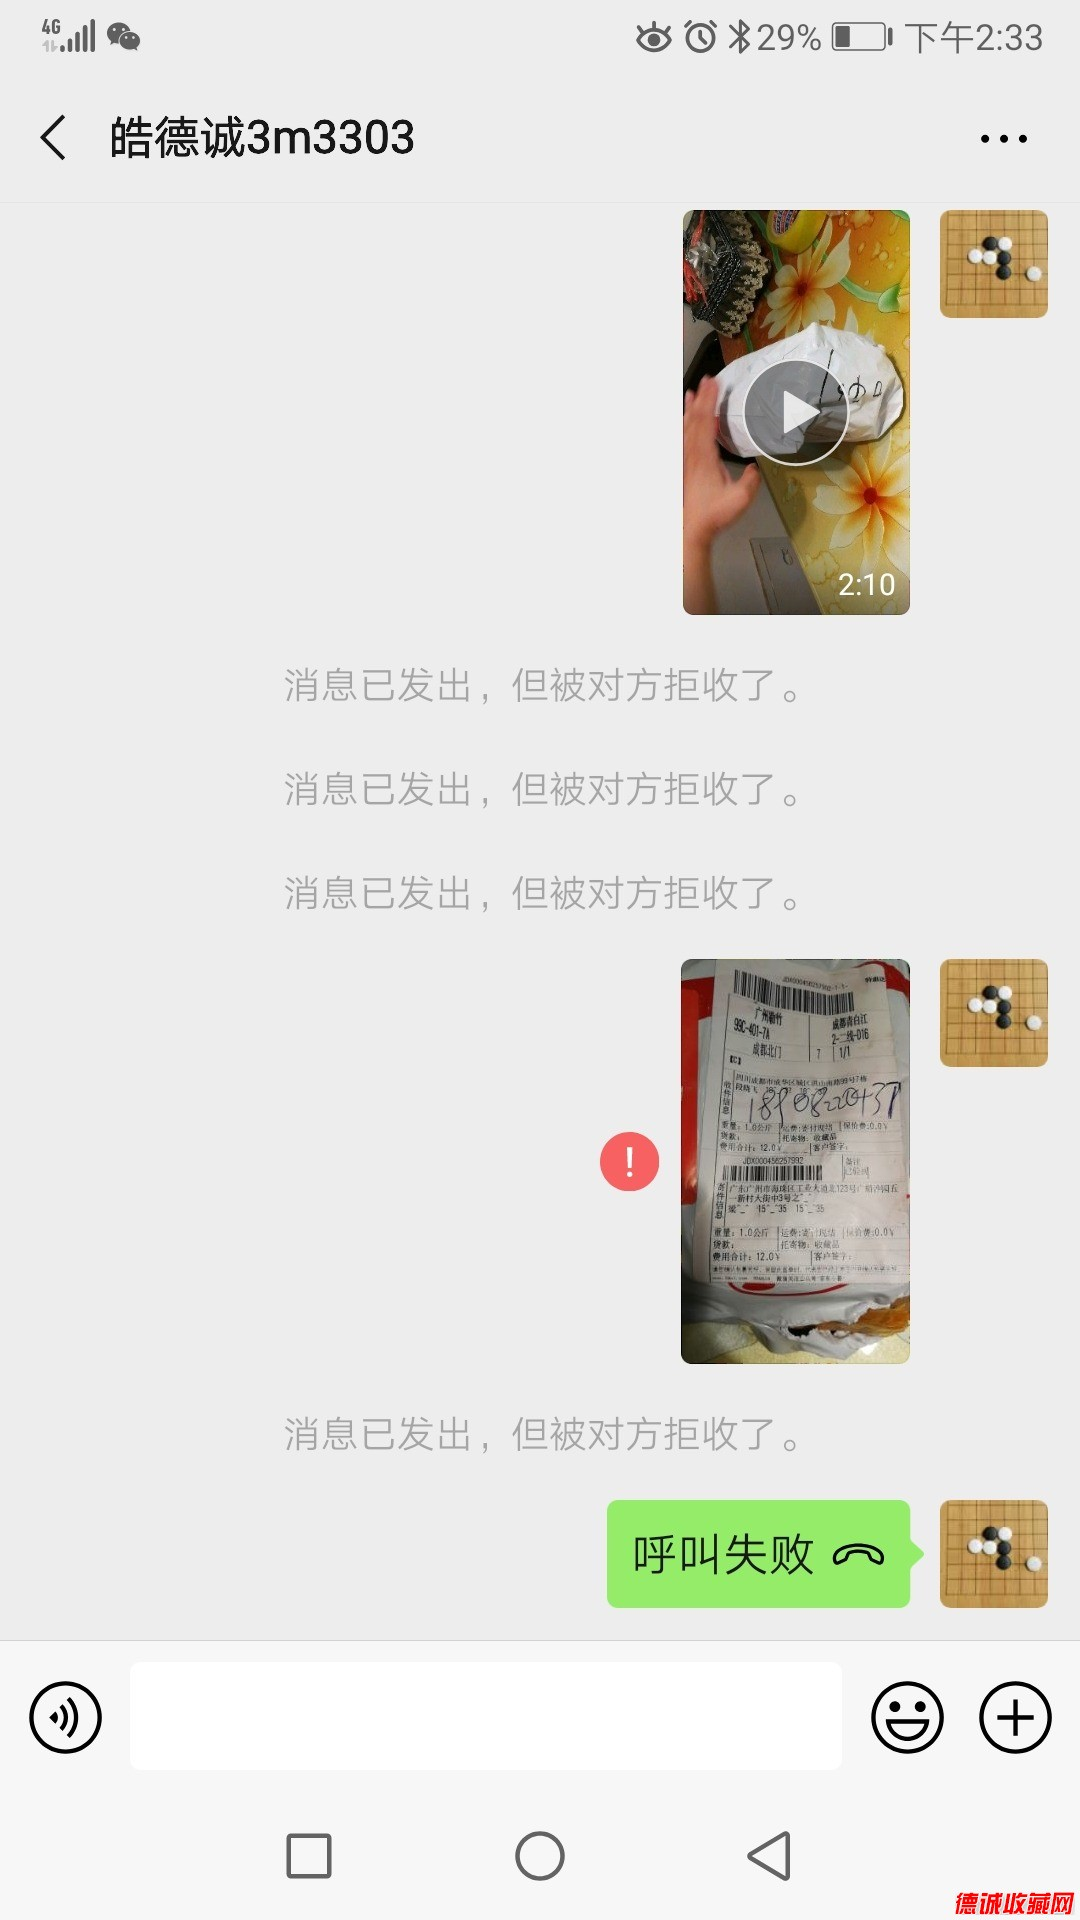 Screenshot_20190807_143332_com.tencent.mm.jpg